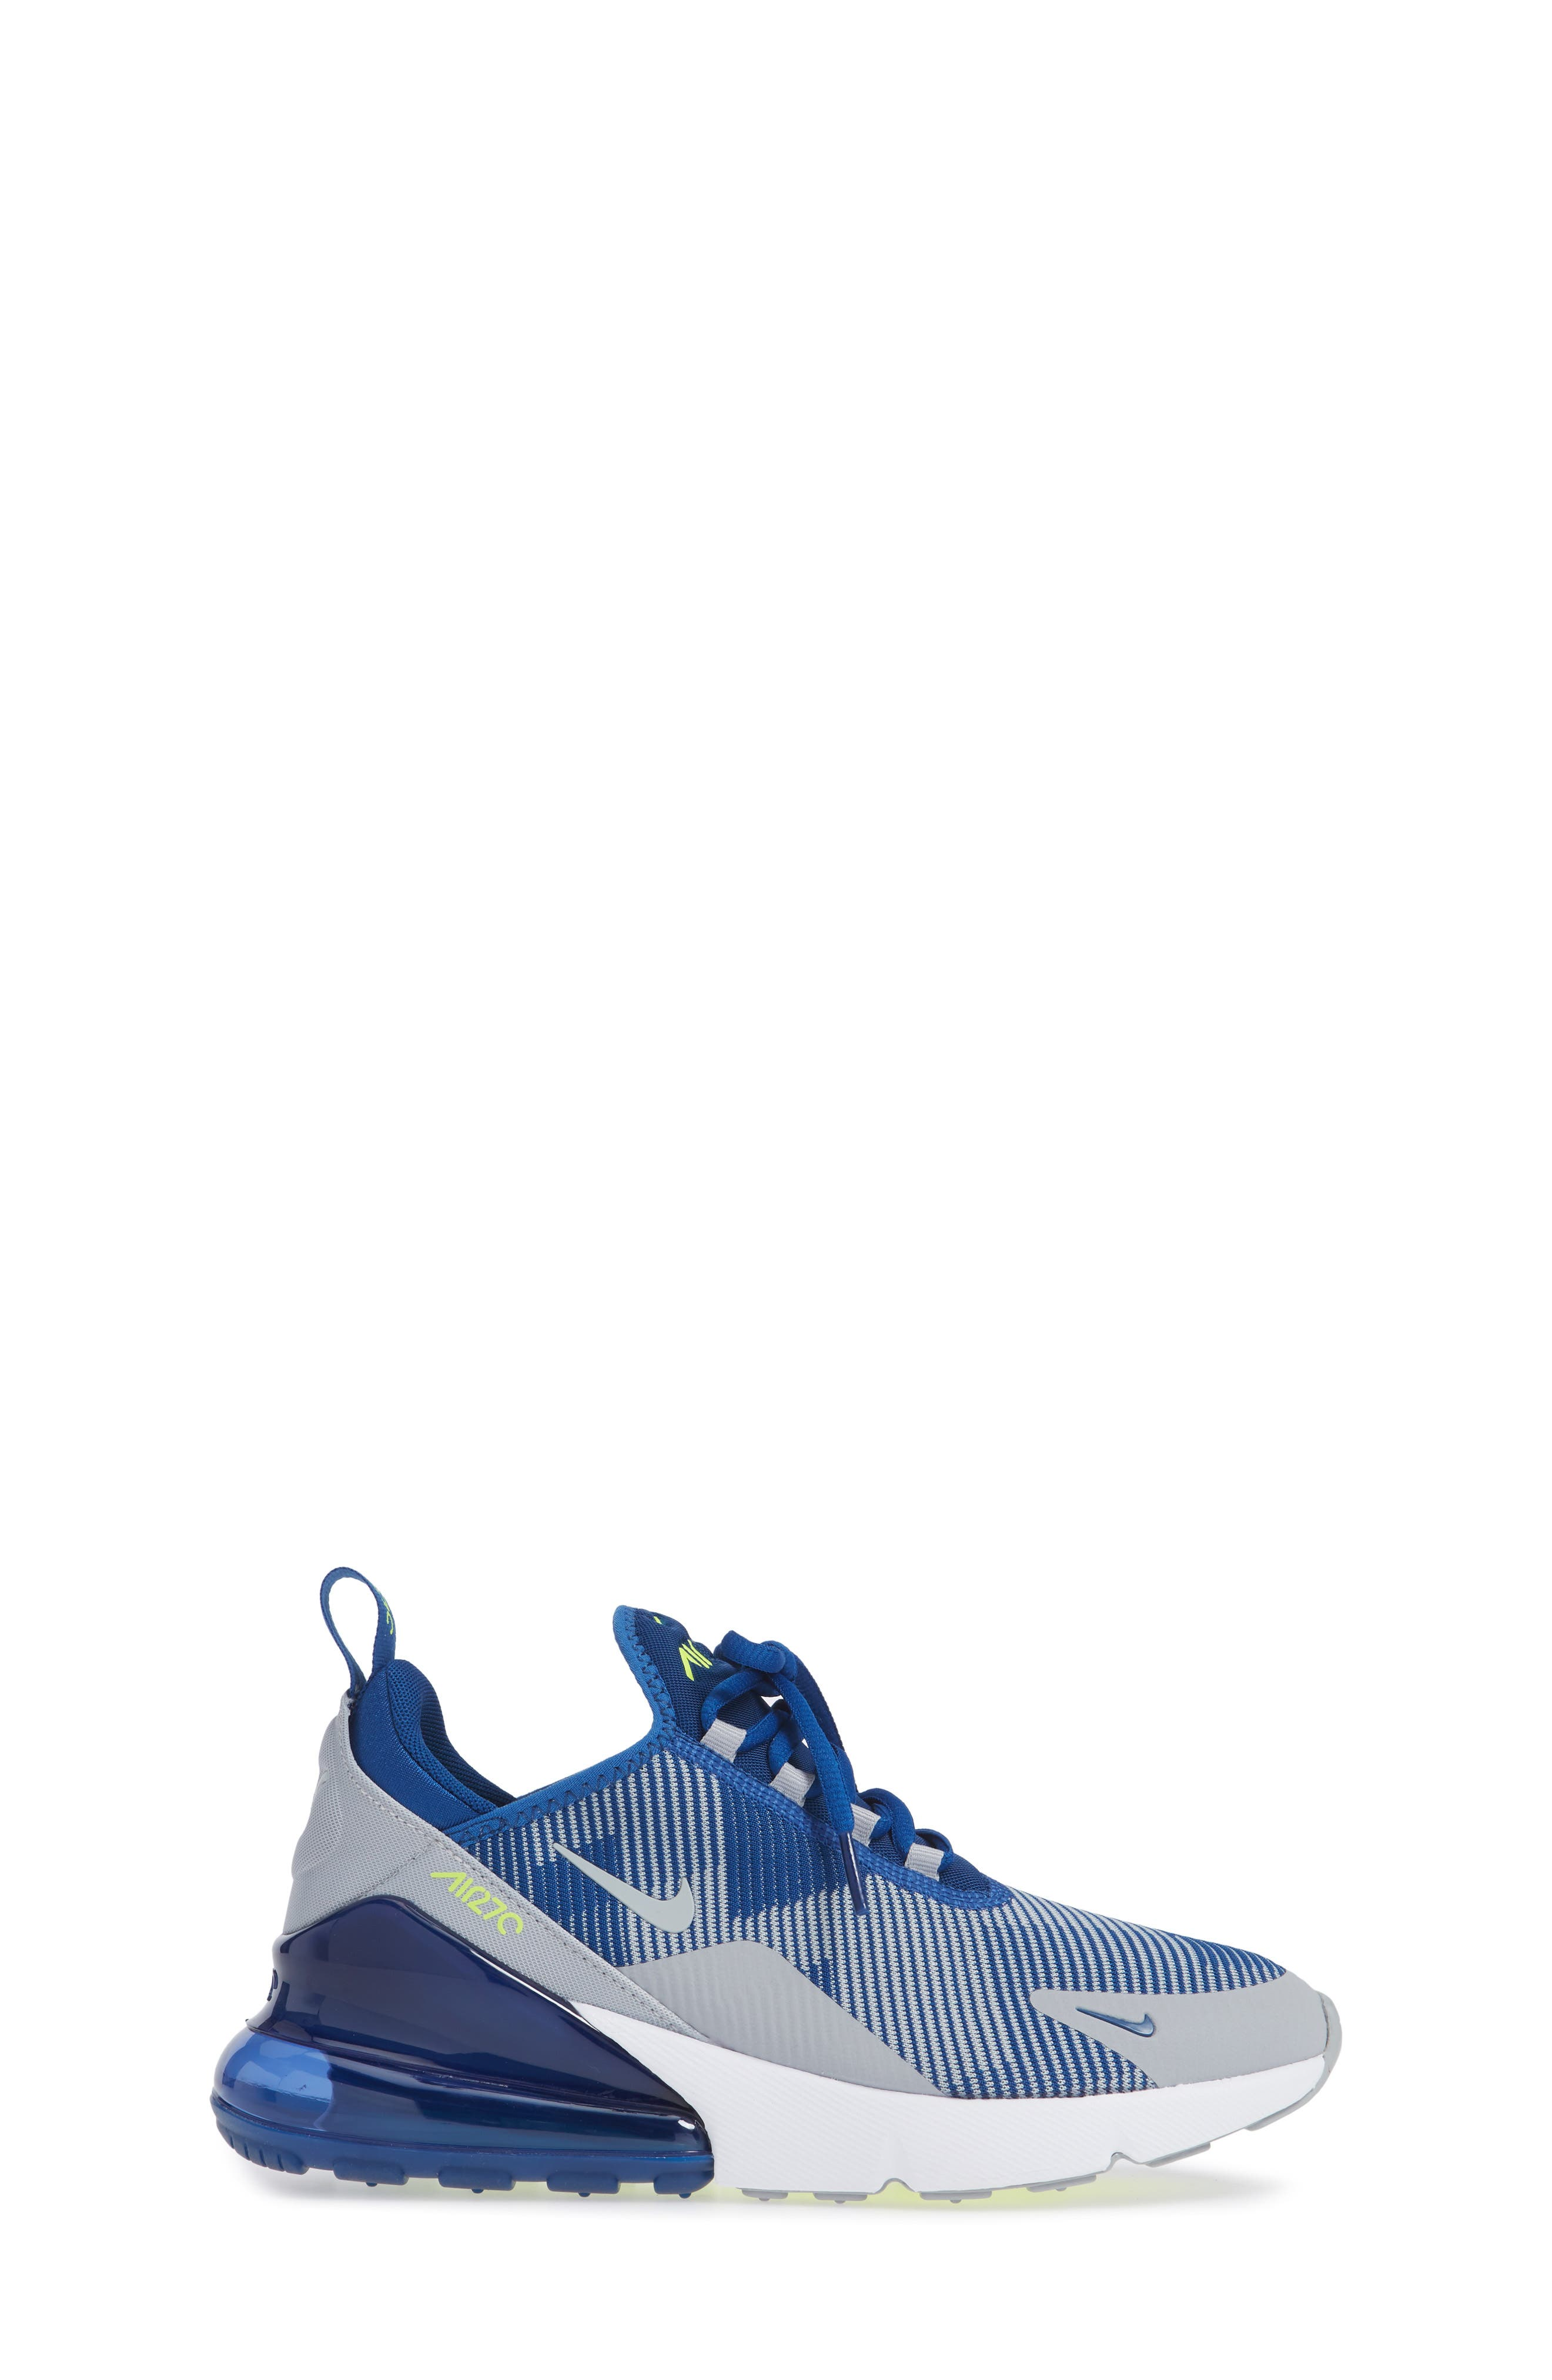 Air Max 270 Sneaker,                             Alternate thumbnail 3, color,                             BLUE/ GREY/ VOLT/ WHITE